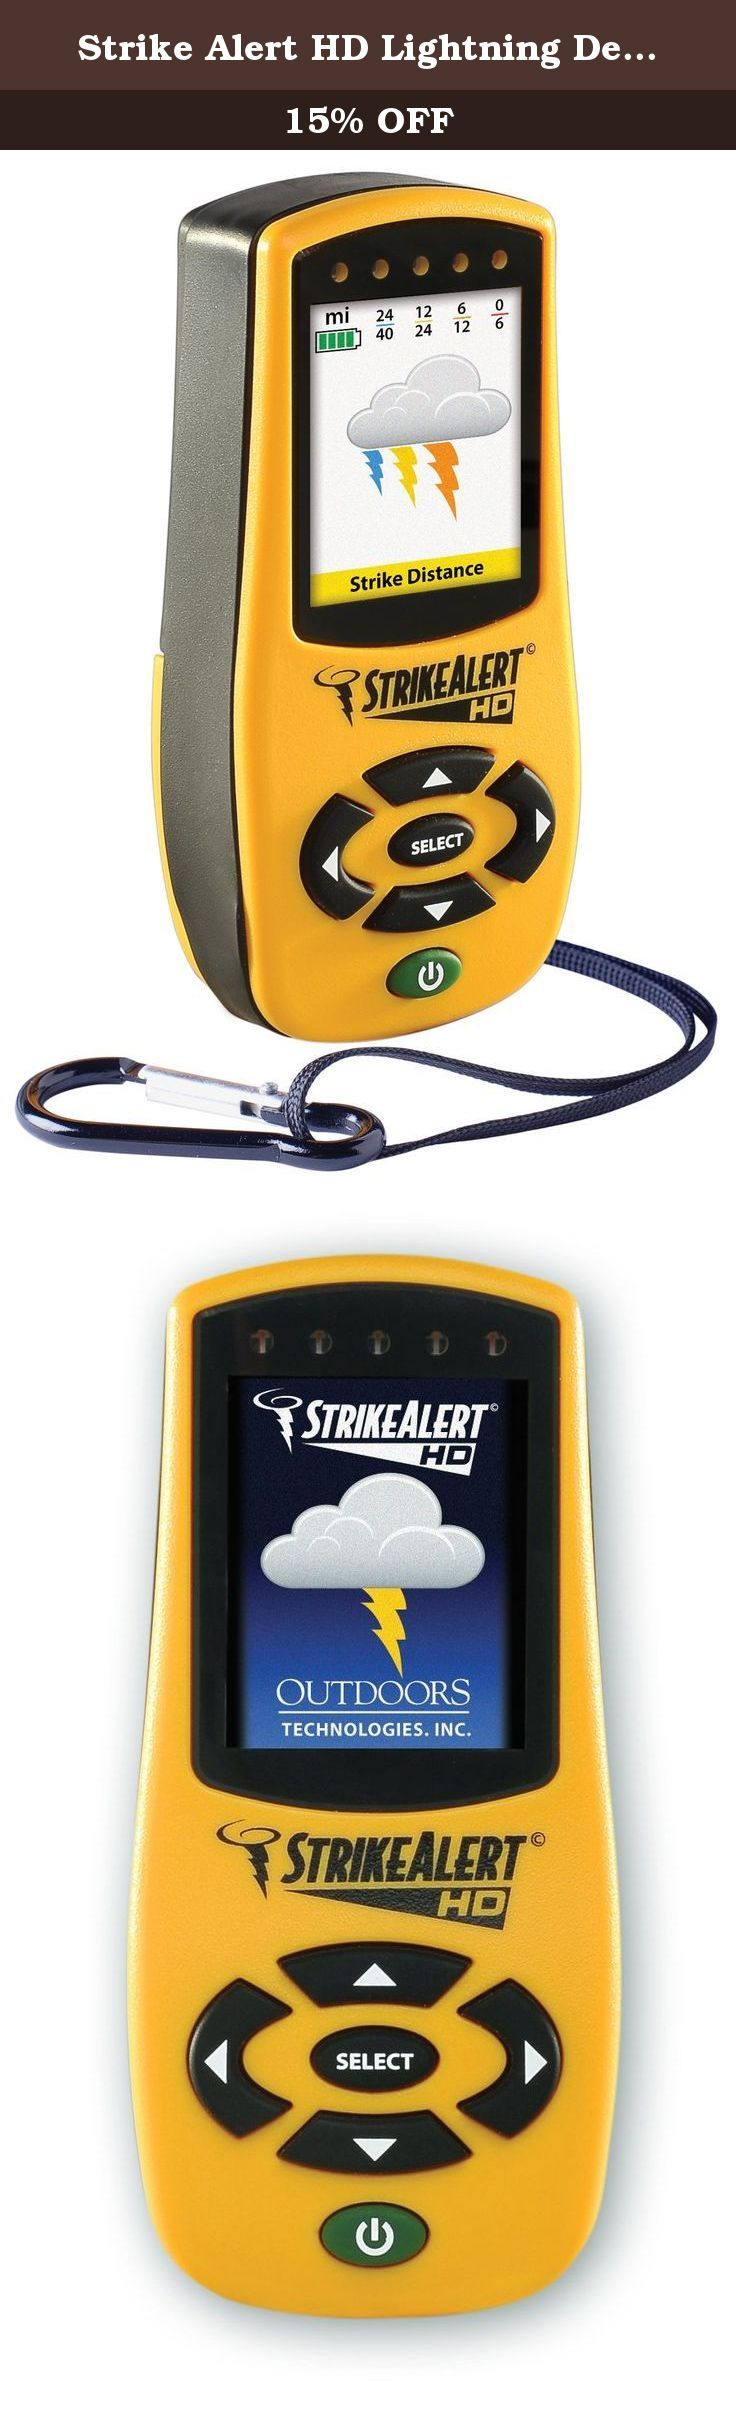 Strike Alert HD Lightning Detector, Yellow. Built on the trusted Strike Alert technology, Strike Alert HD is the first personal lightning detector with a graphical display that shows you the lightning strike distance (from 0 - 40 miles away) as well as a 1-hour storm trend and intensity. Most other personal lightning detectors offer only 180Degree tracking, but Strike Alert HD offers complete 360Degree tracking - in all directions, so there are no blind spots. You can set the unit to…